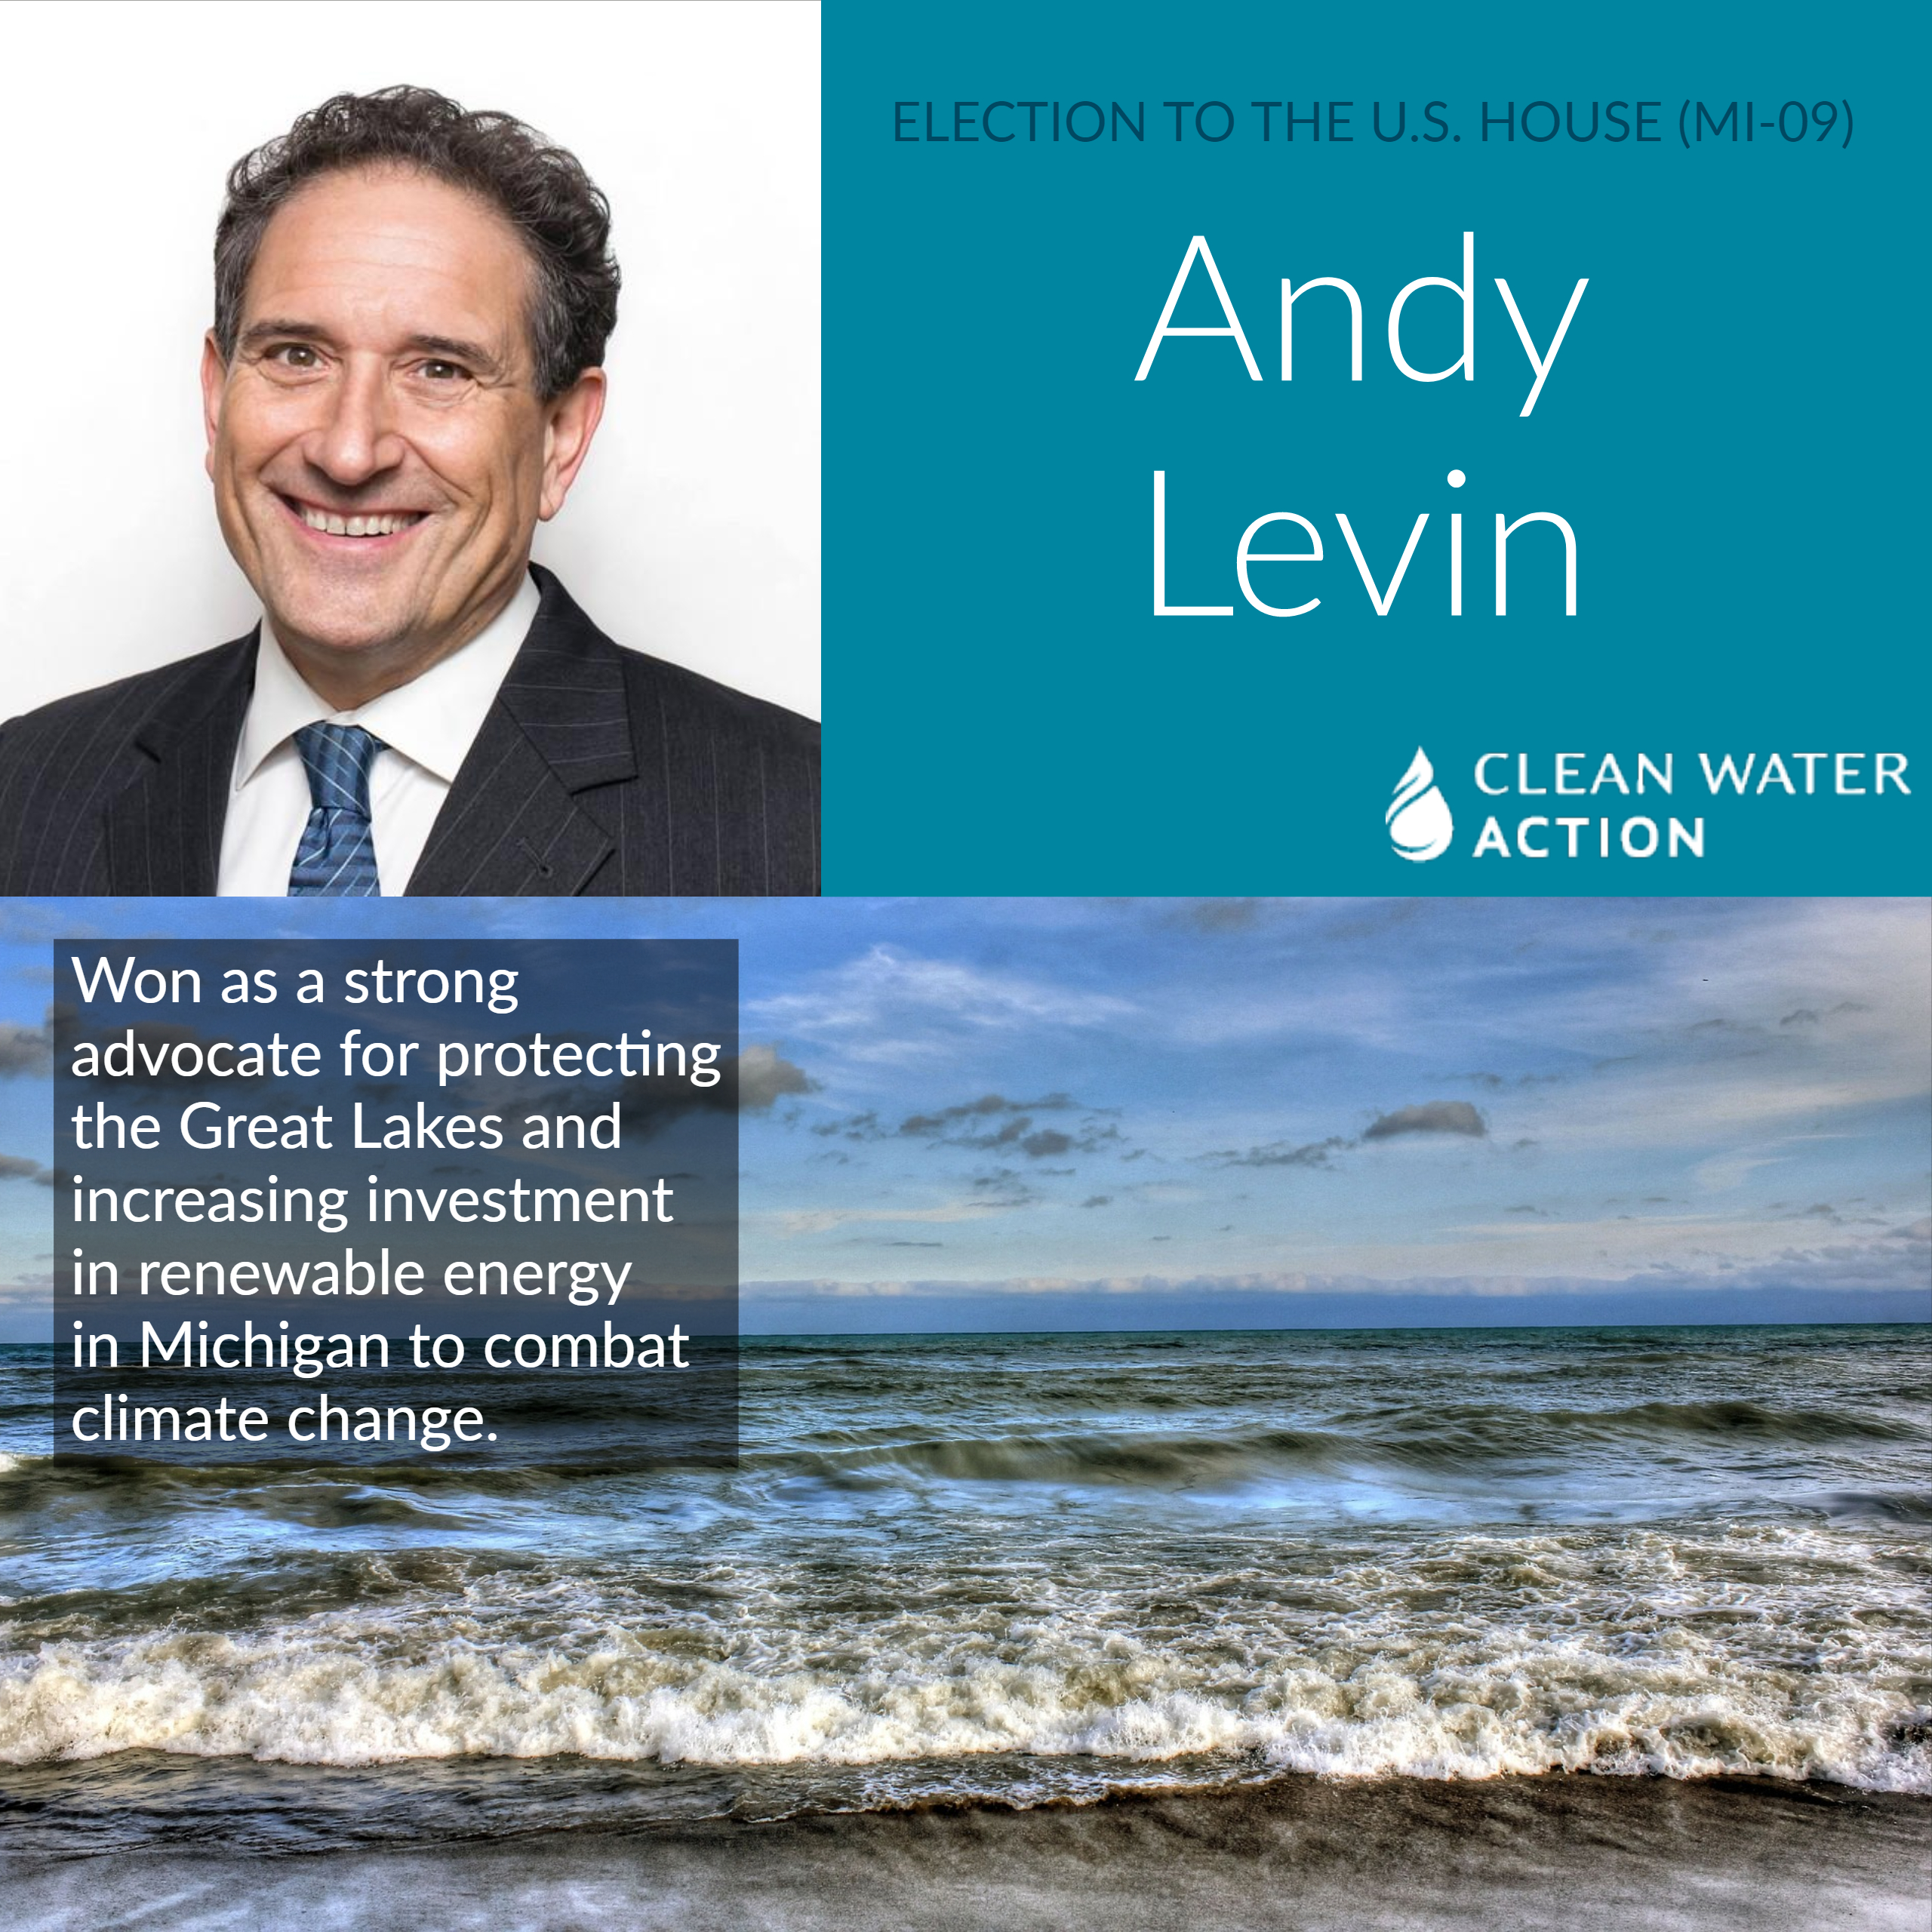 Andy Levin